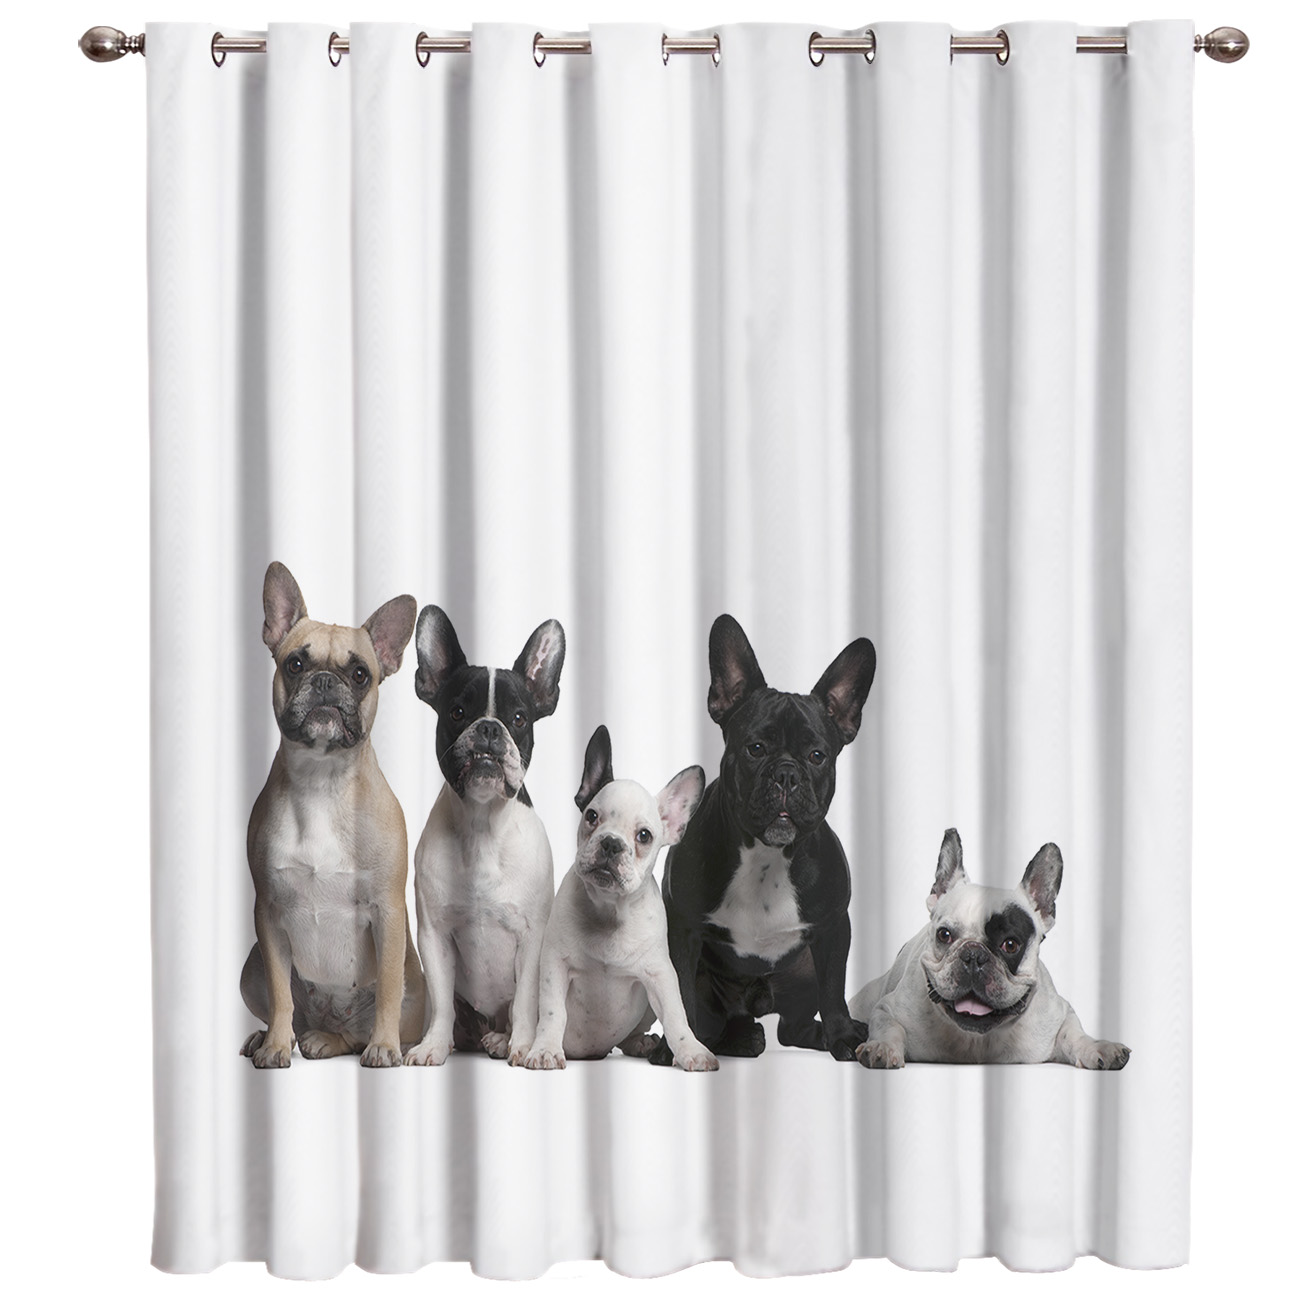 French Bulldog Window Curtains Dark Curtain Rod Bathroom Bedroom Drapes Indoor Decor Kids Curtain Panels With Grommets Window